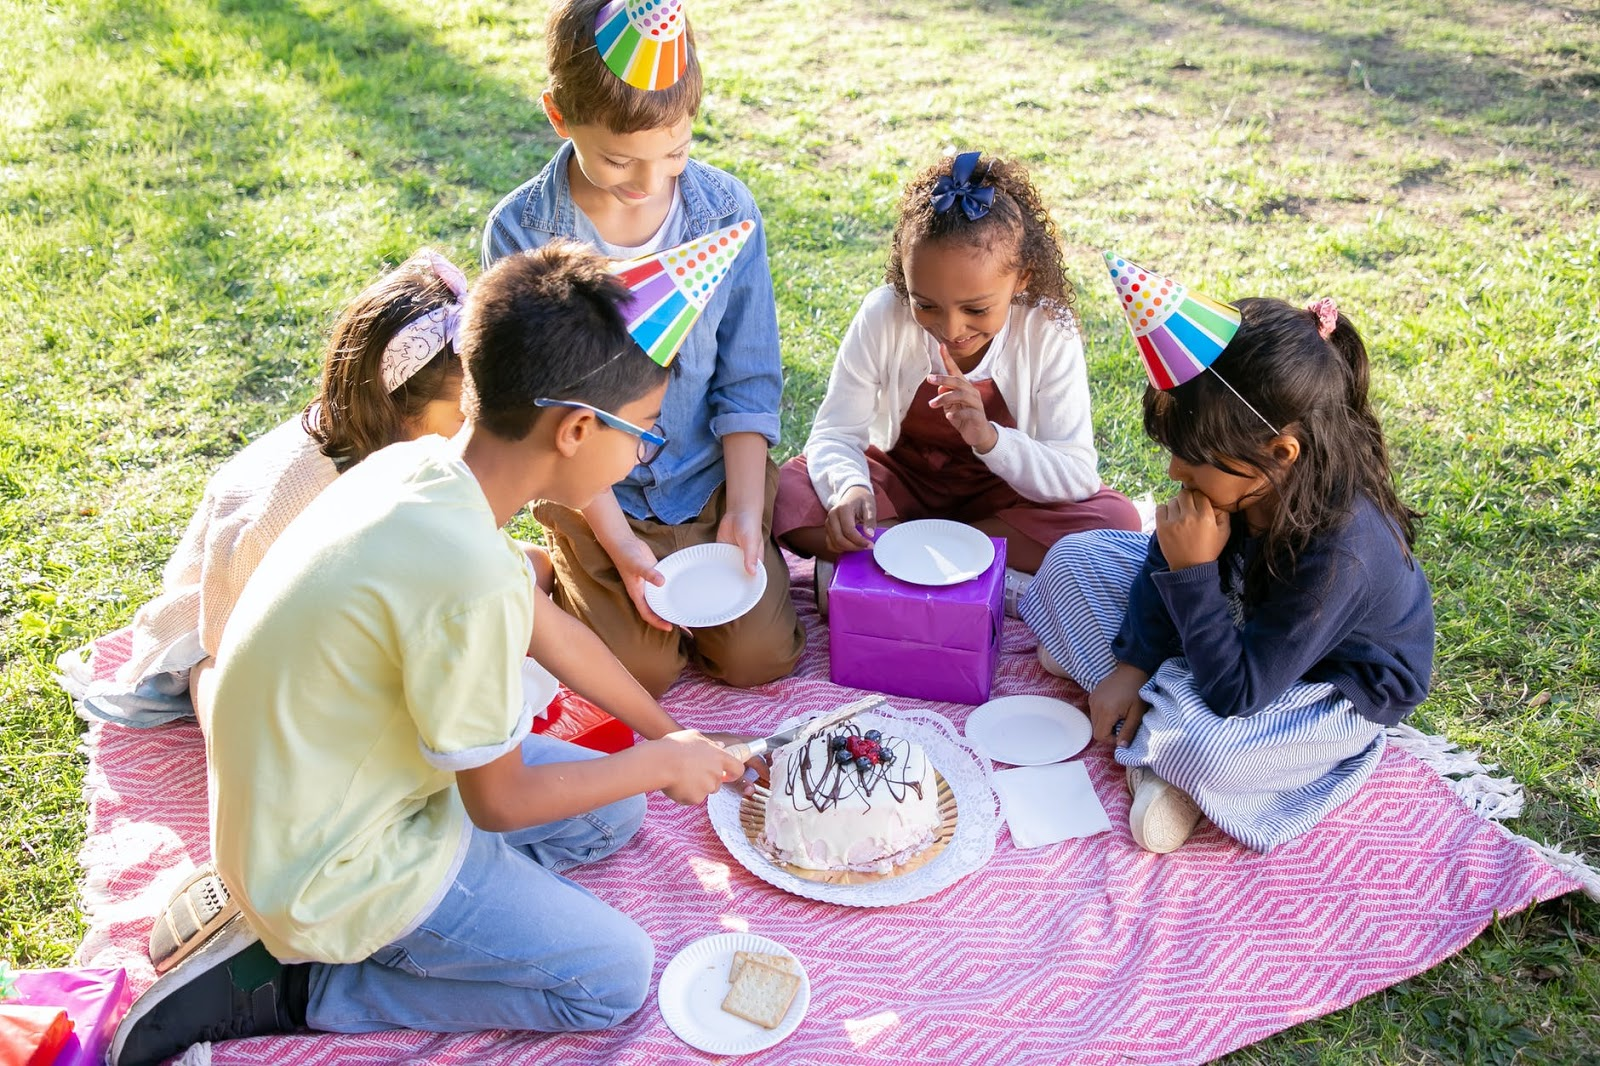 Children sit on a blanket outside and cut into a birthday cake